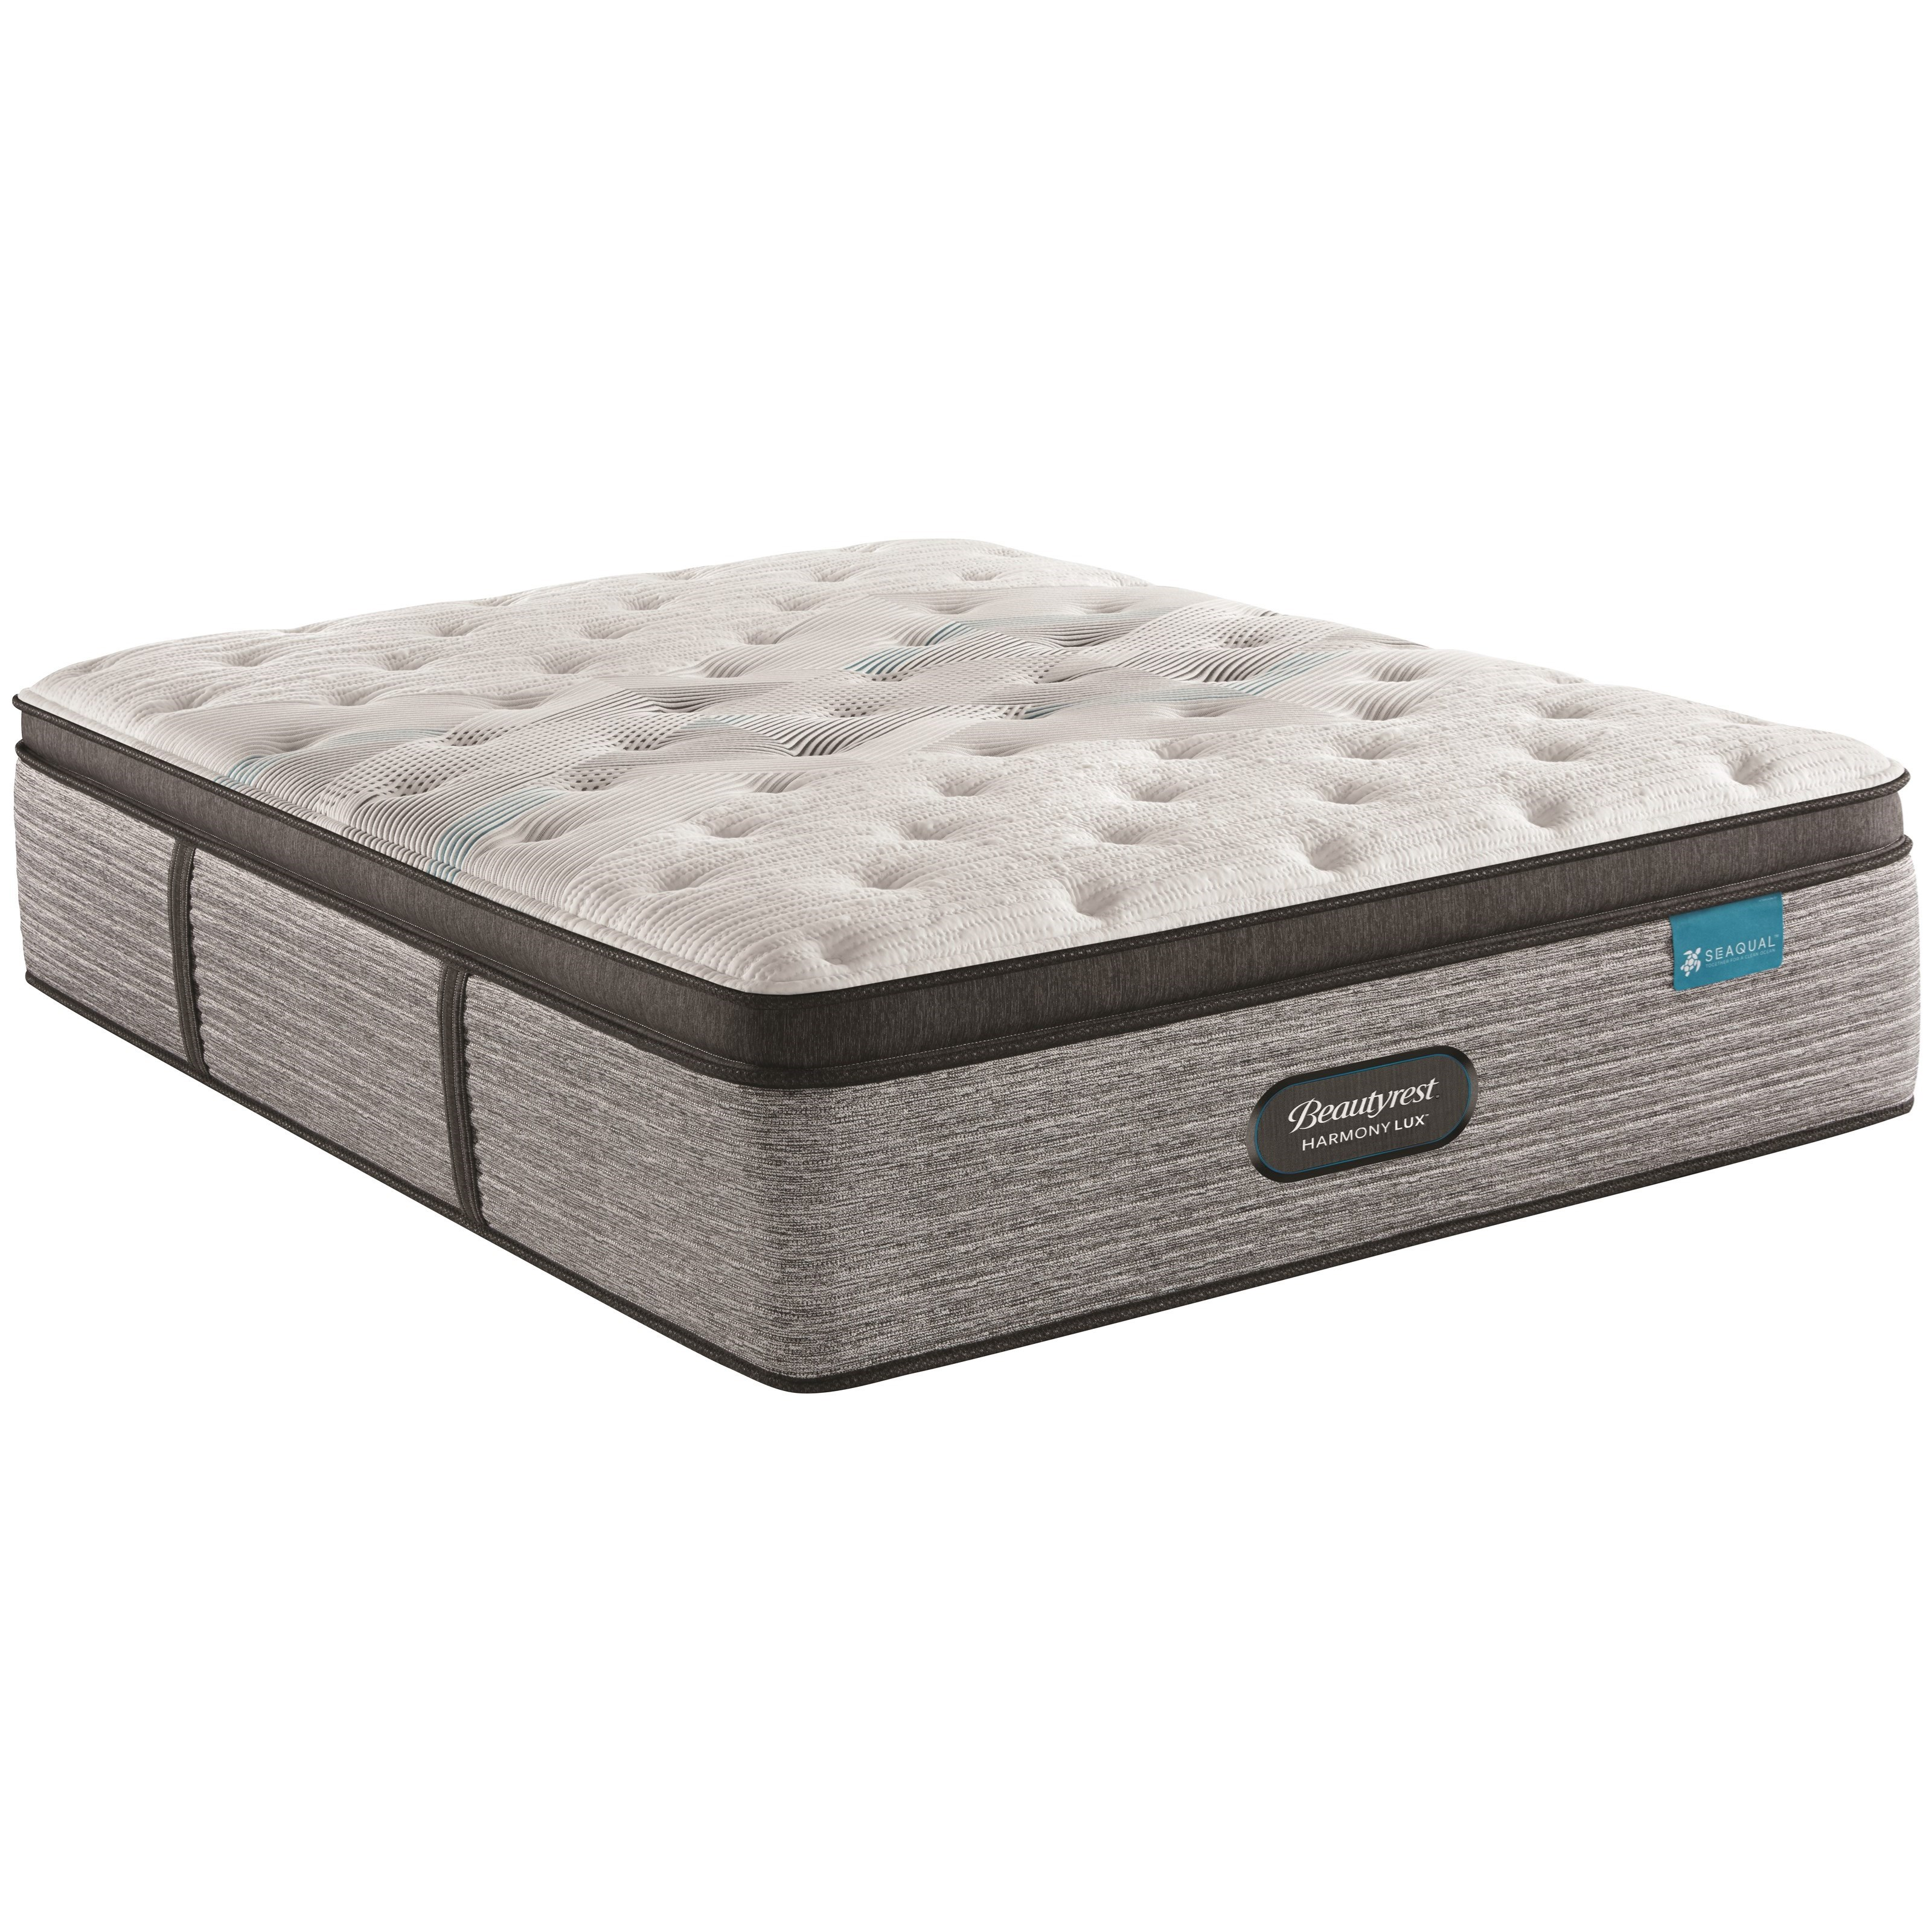 "Carbon Series Medium PT Queen 15 3/4"" Medium PT Mattress by Beautyrest at Rotmans"